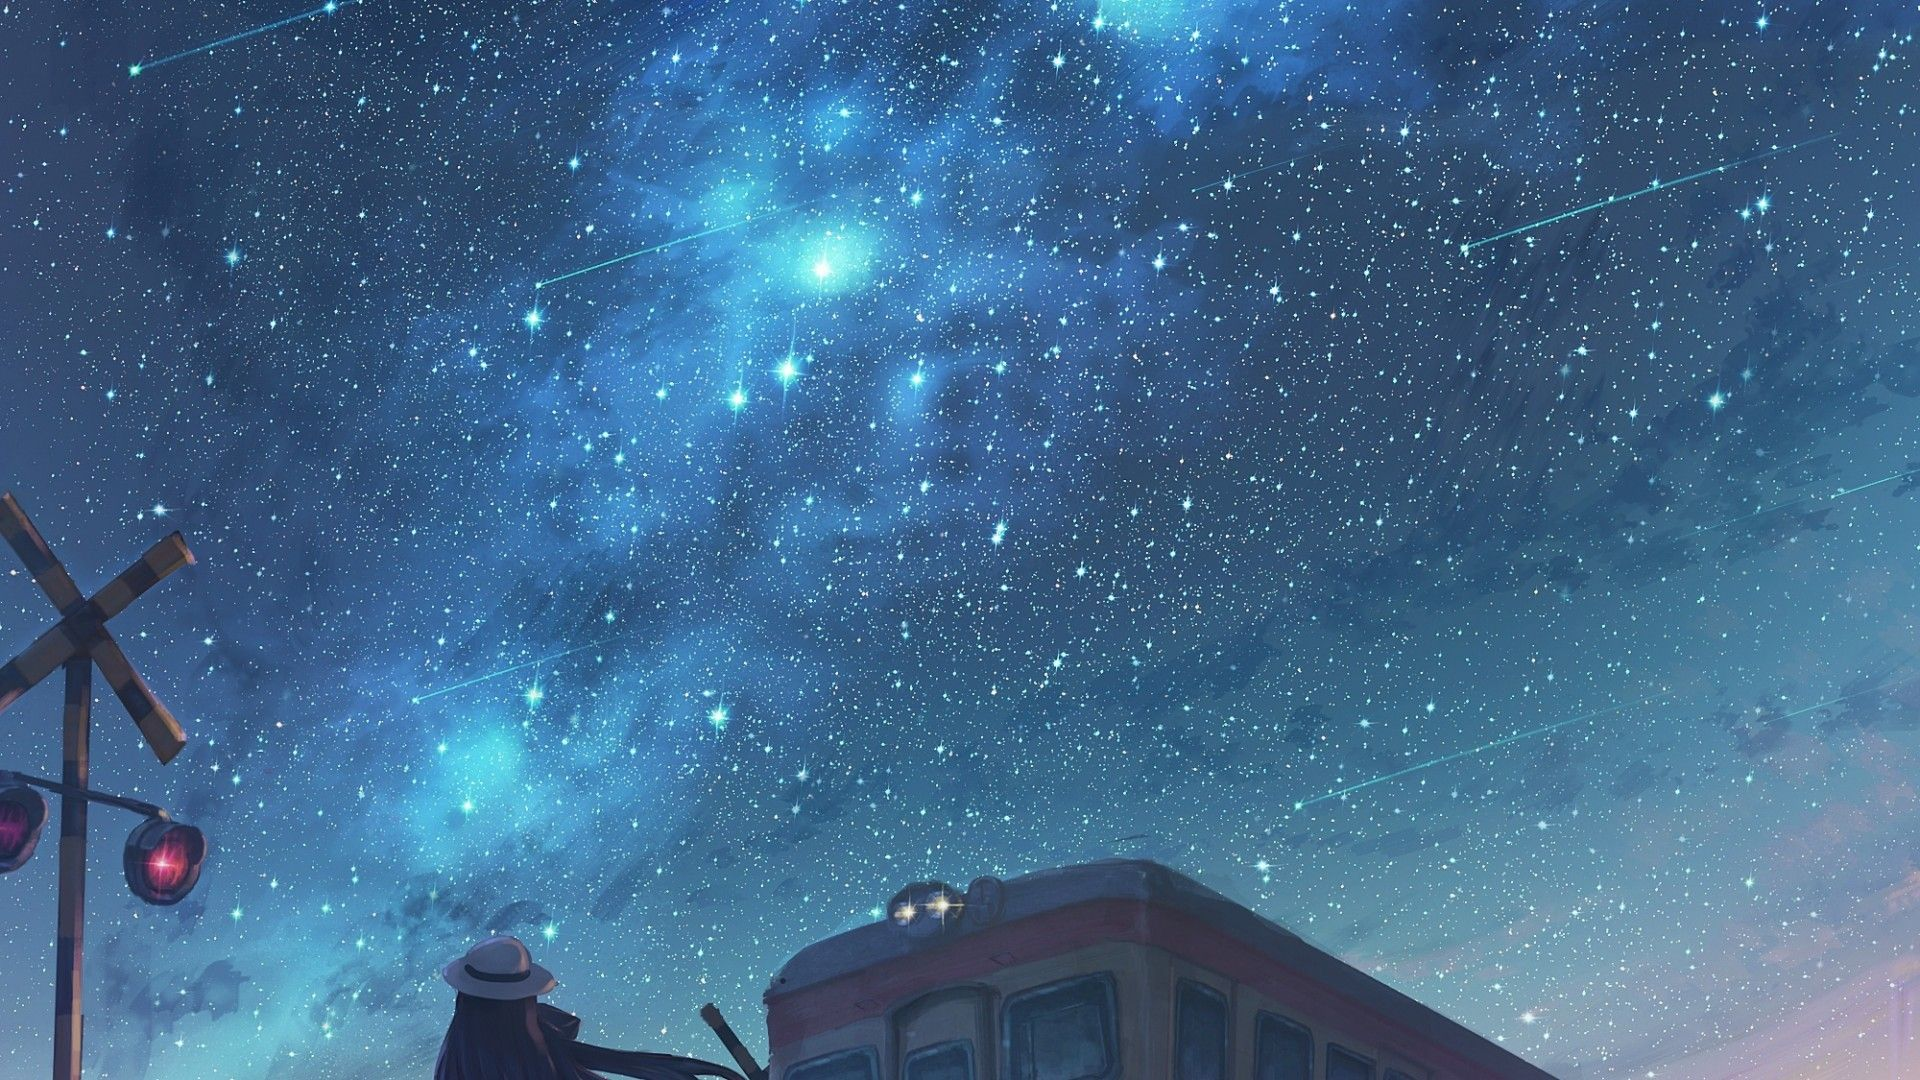 1920x1080 Anime Night Sky Wallpapers Wallpaper Cave